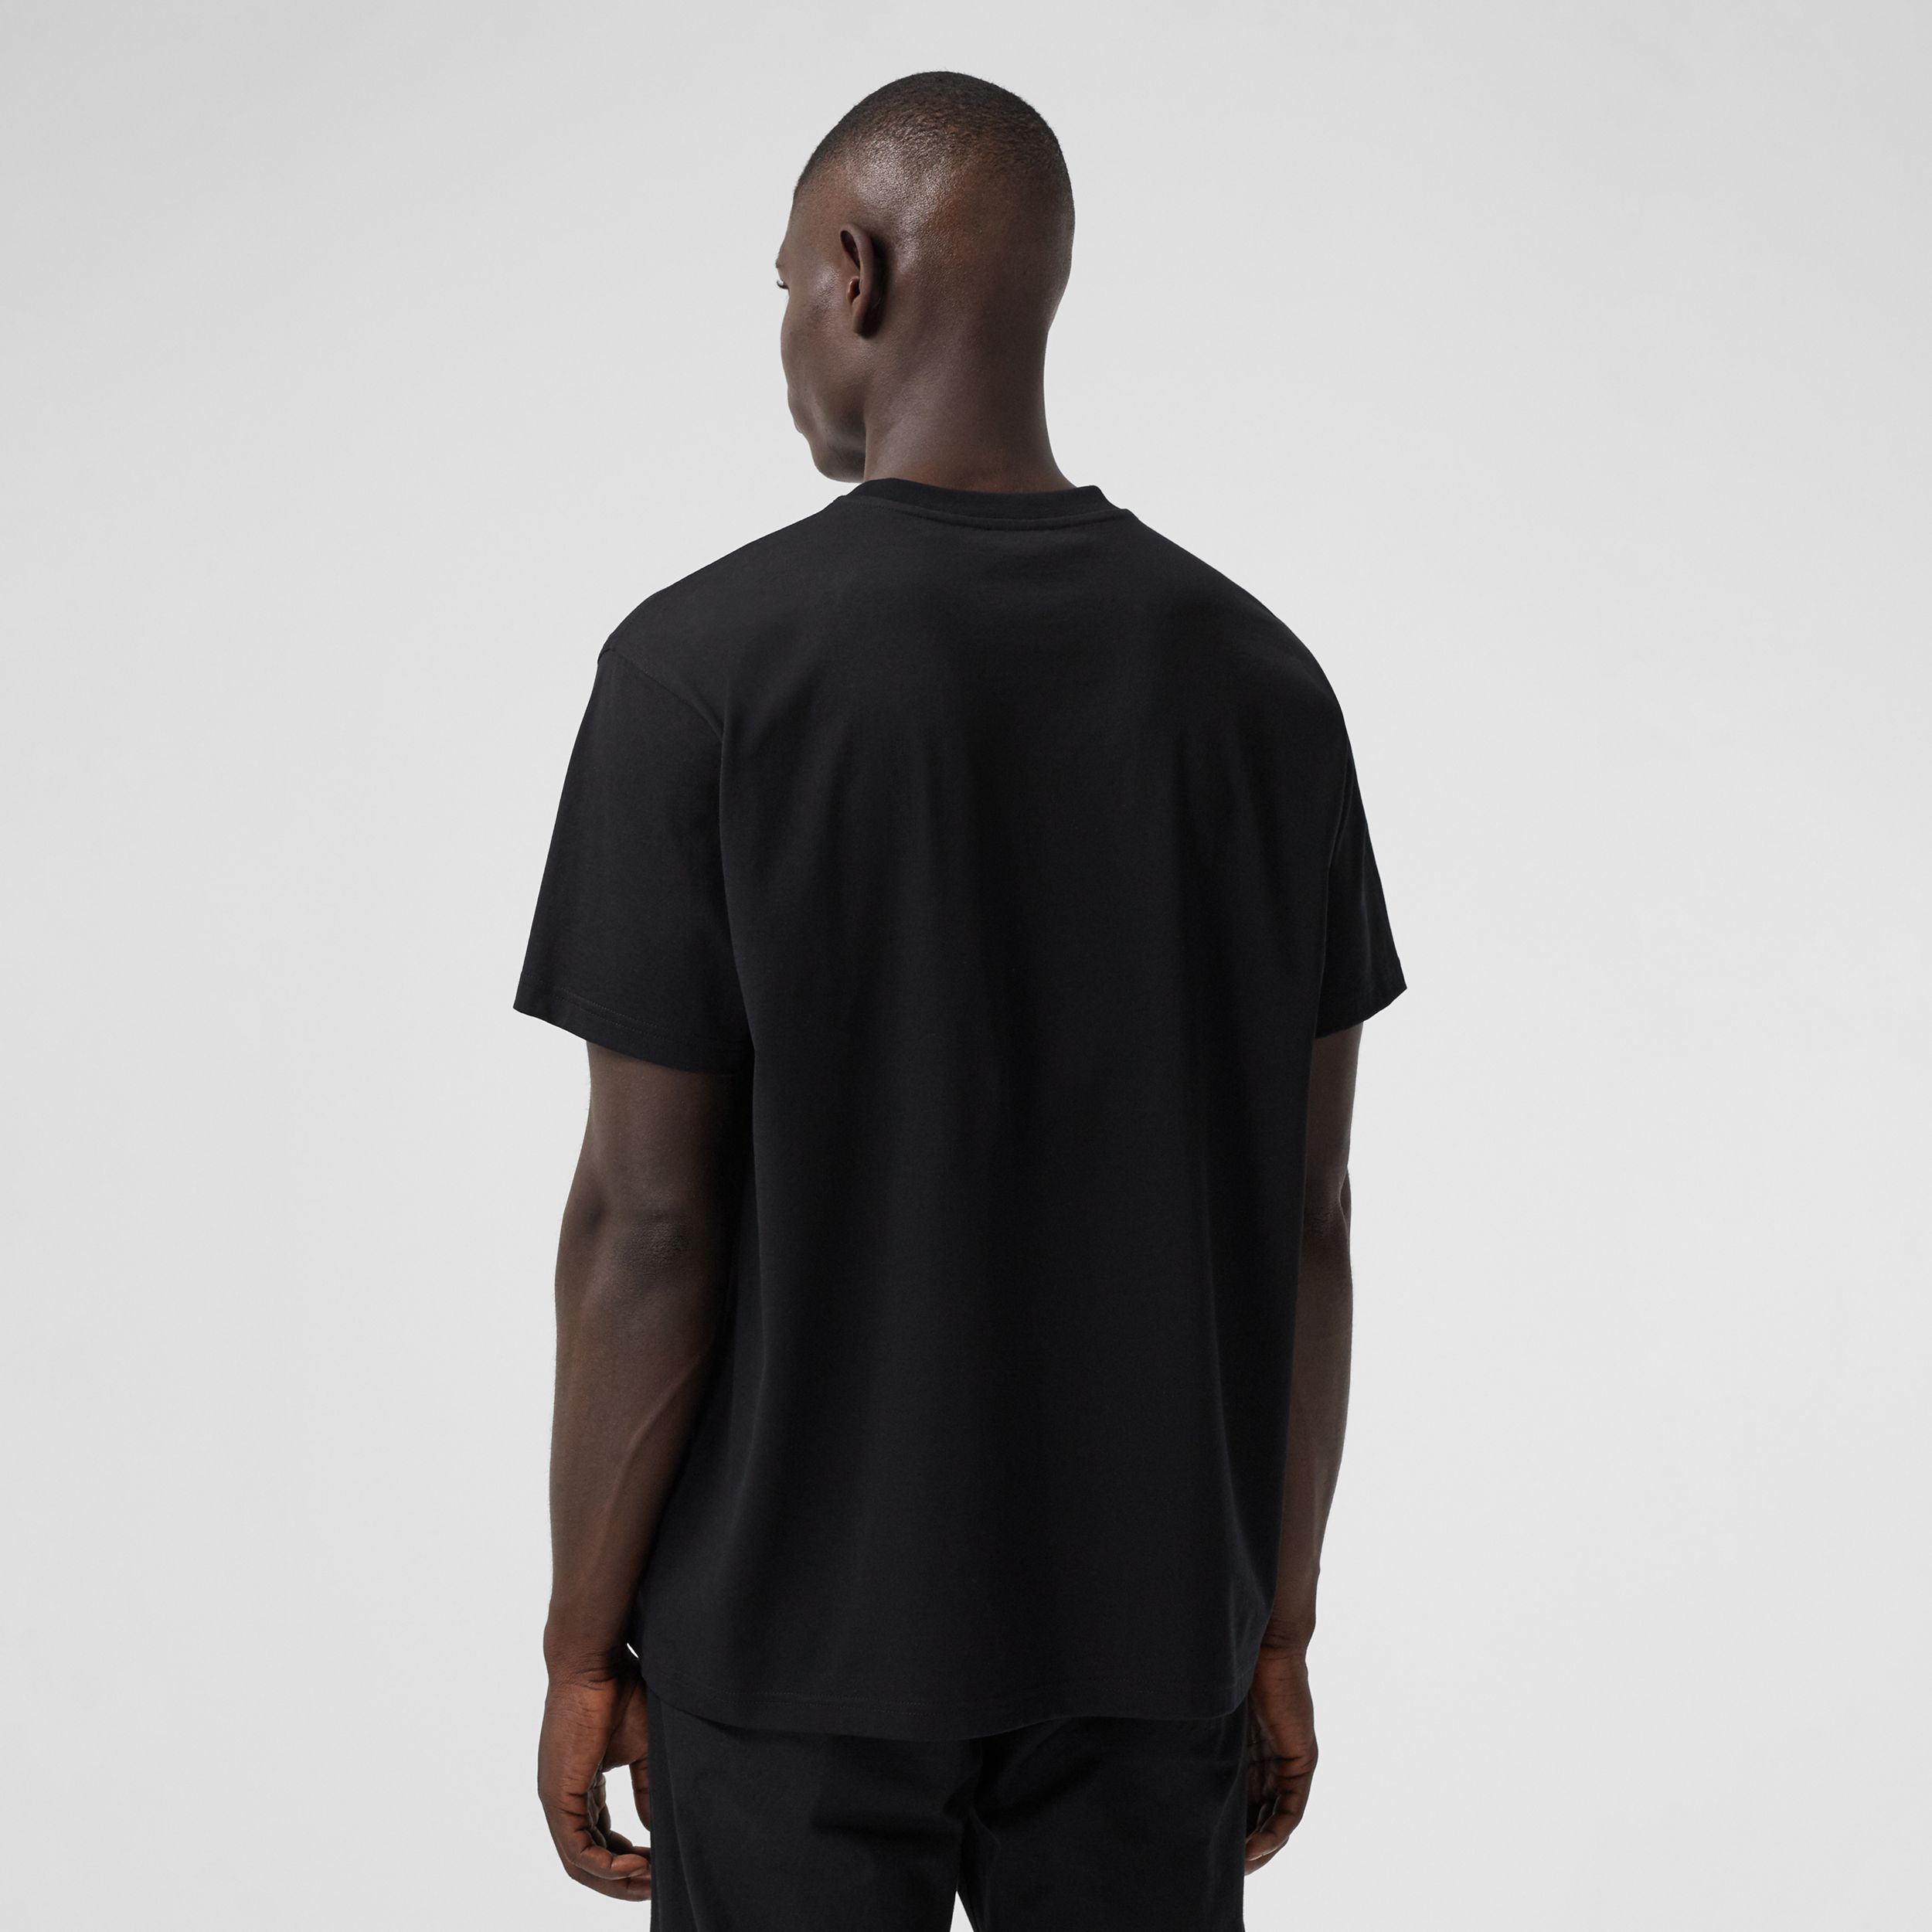 Kaleidoscope Print Cotton Oversized T-shirt in Black - Men | Burberry - 3